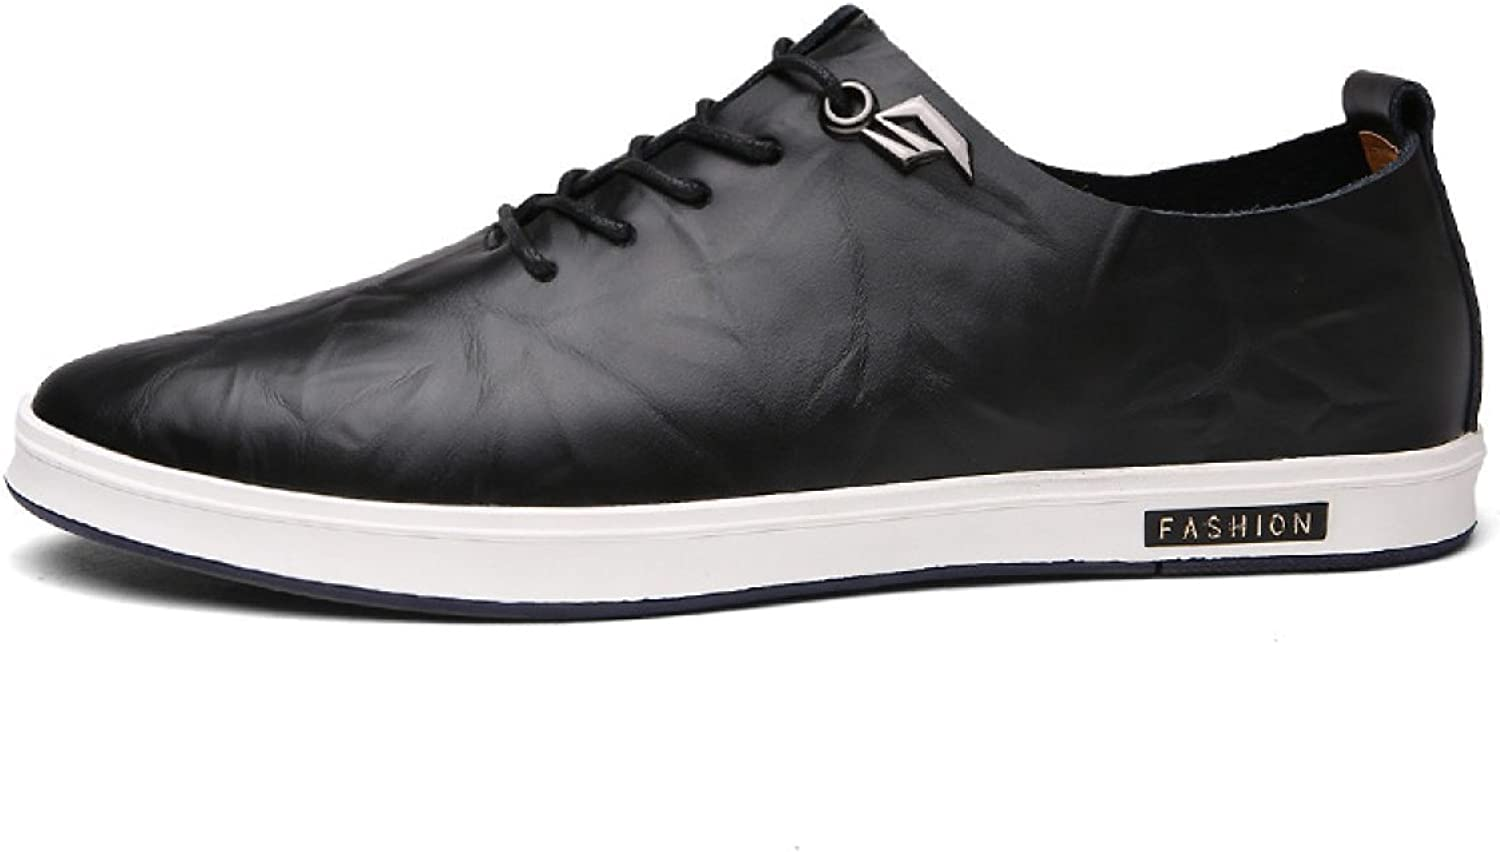 Men's Casual shoes Low To Help Tie Round Leather shoes Men's shoes